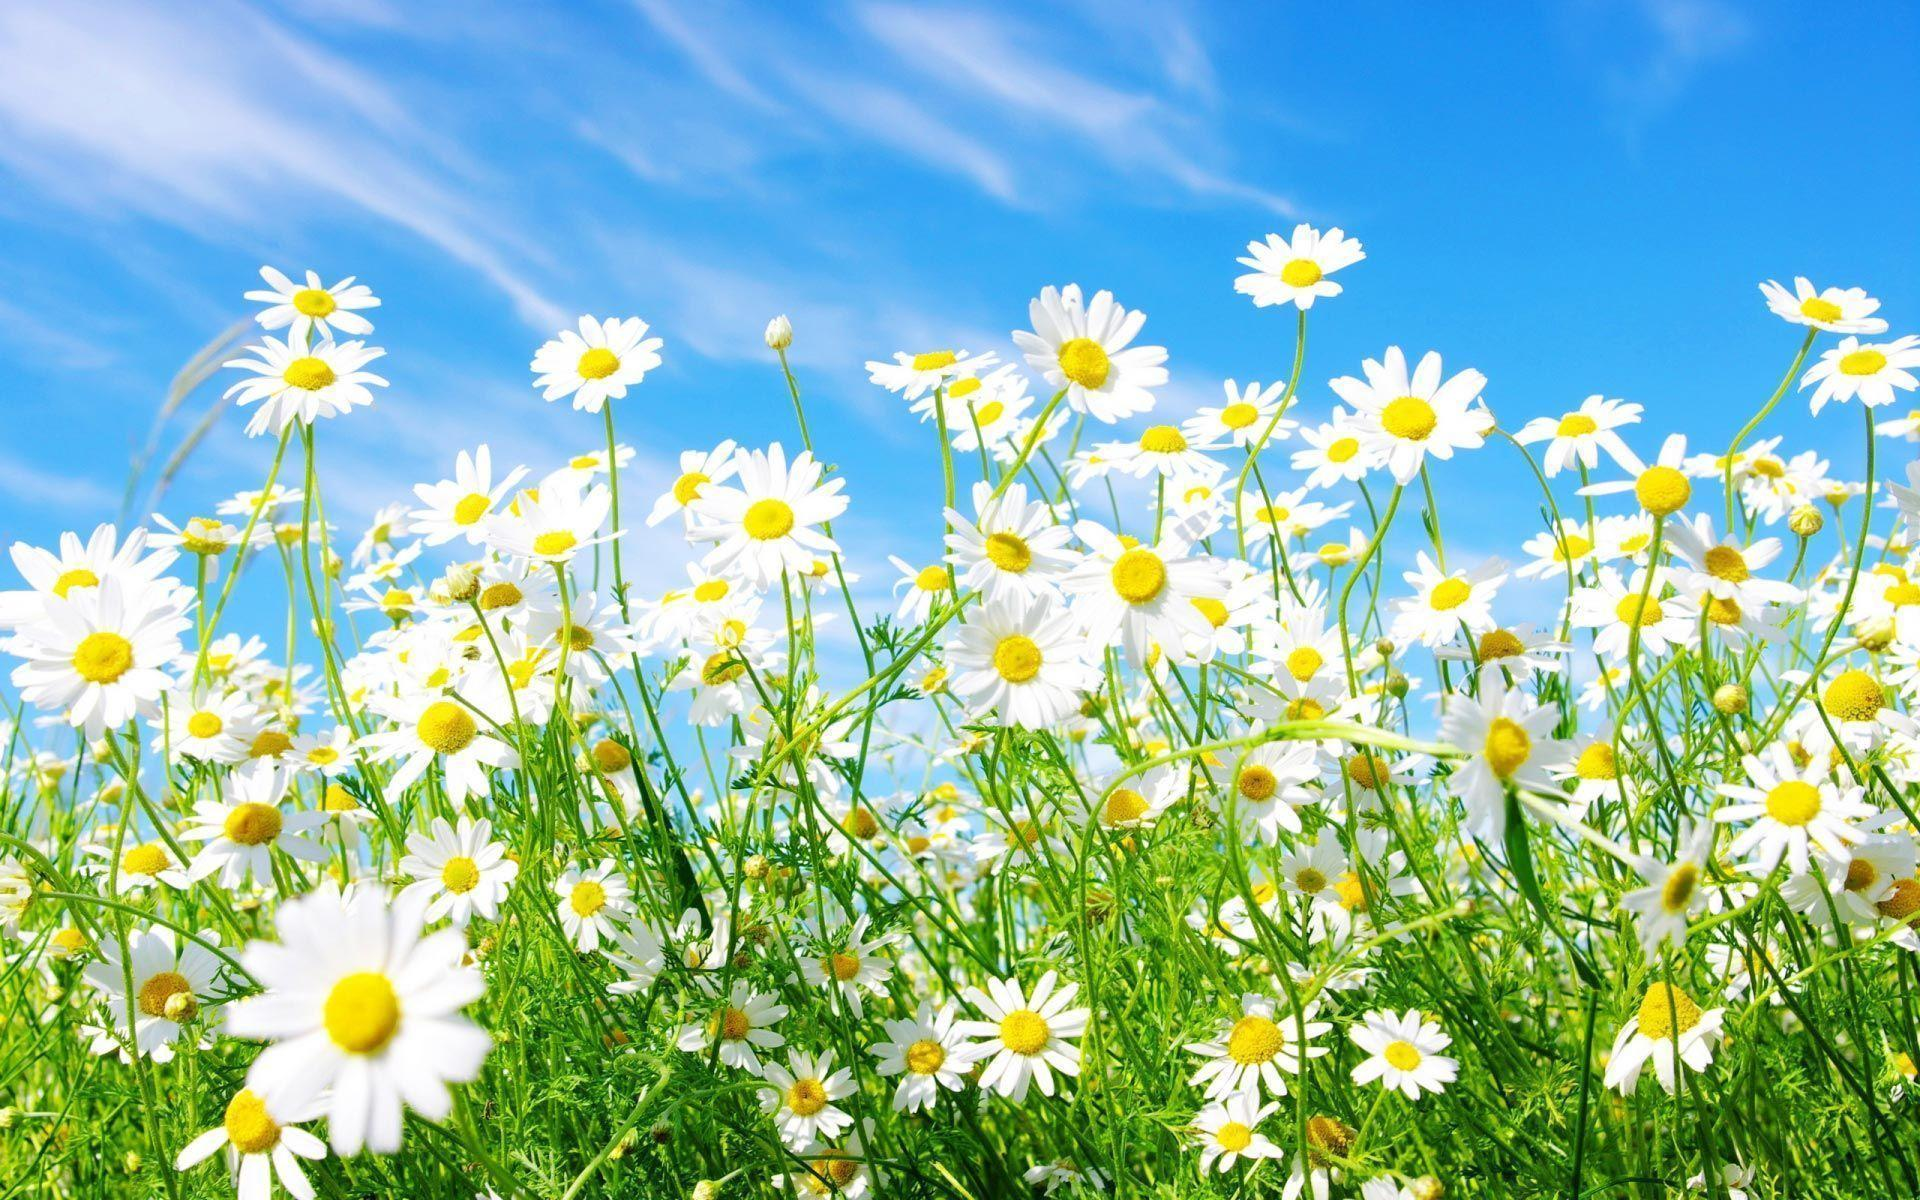 Flowers Spring Wallpapers Download Wallpapers from HD Wallpapers